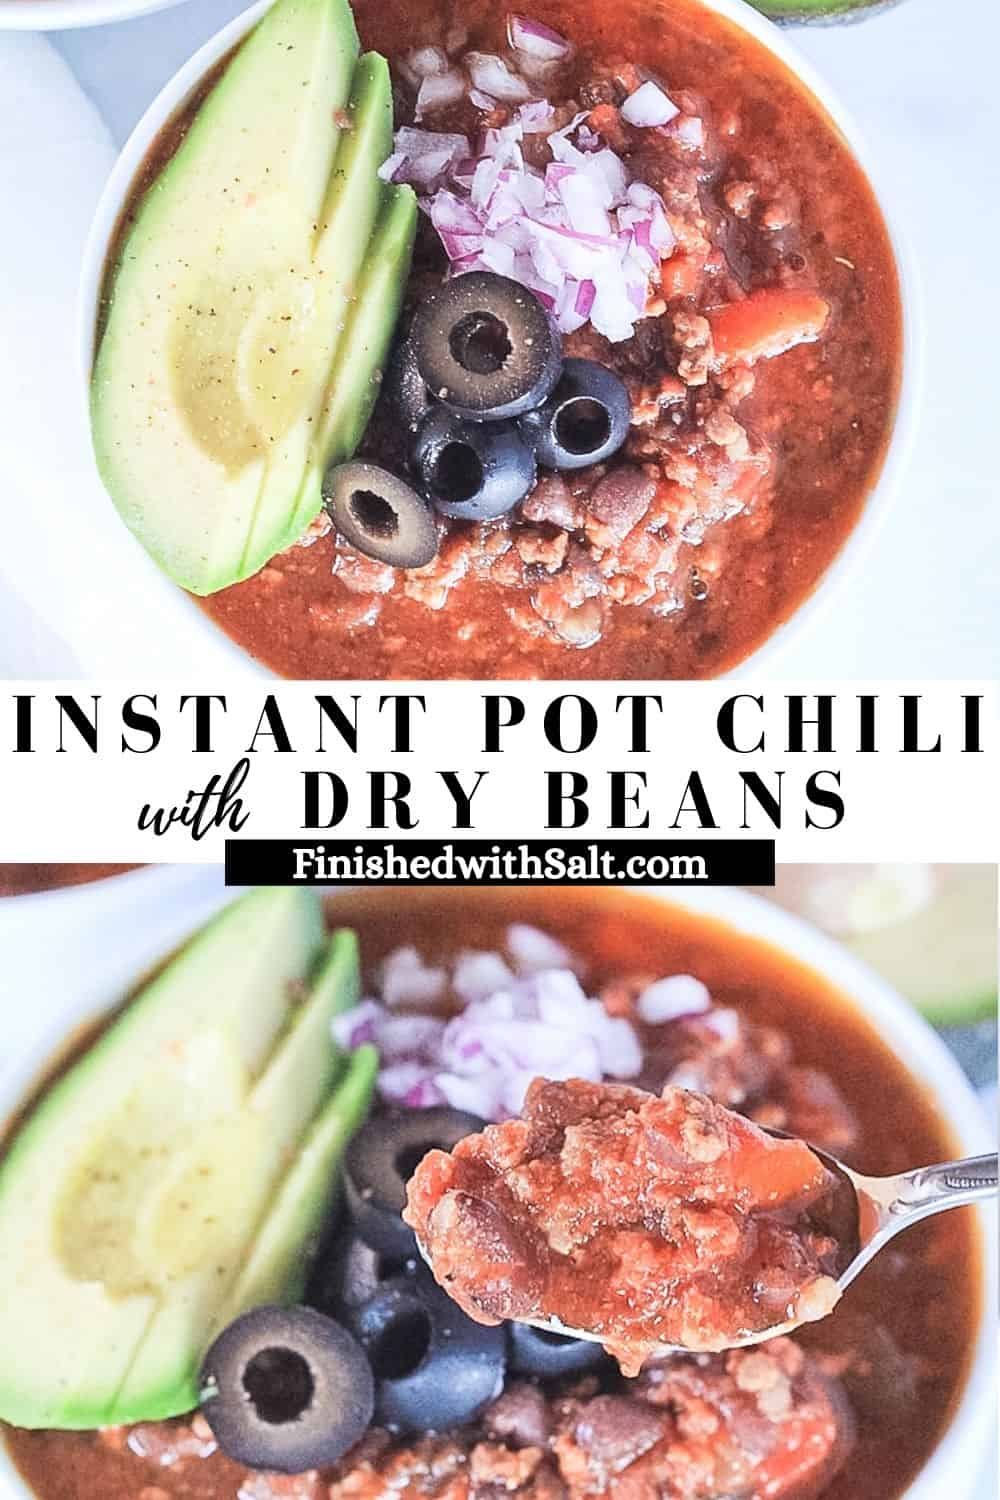 Two combined pictures of chili in white bowls and a spoon scooping a bite.